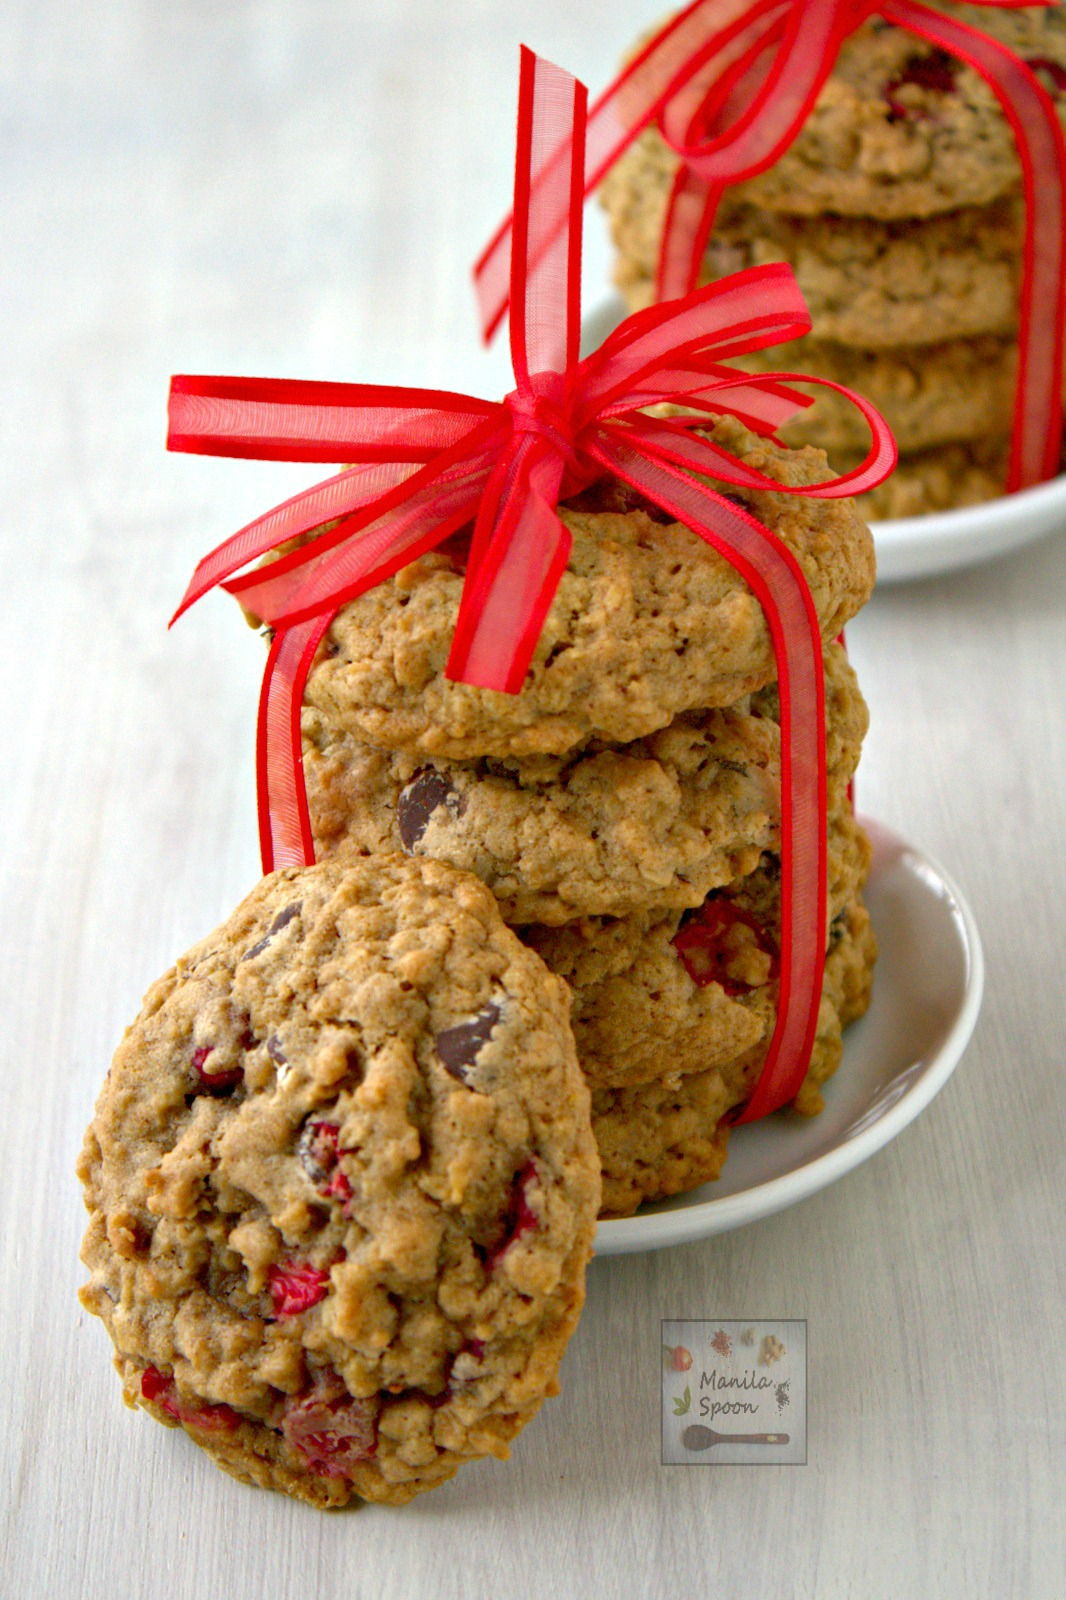 Chewy,moist and delicious cookies!! Cranberries give these yummy cookies a fresh tangy flavor which perfectly contrasts with chocolate and cinnamon spice. Perfect sweet treat for Thanksgiving, Christmas and New Year!